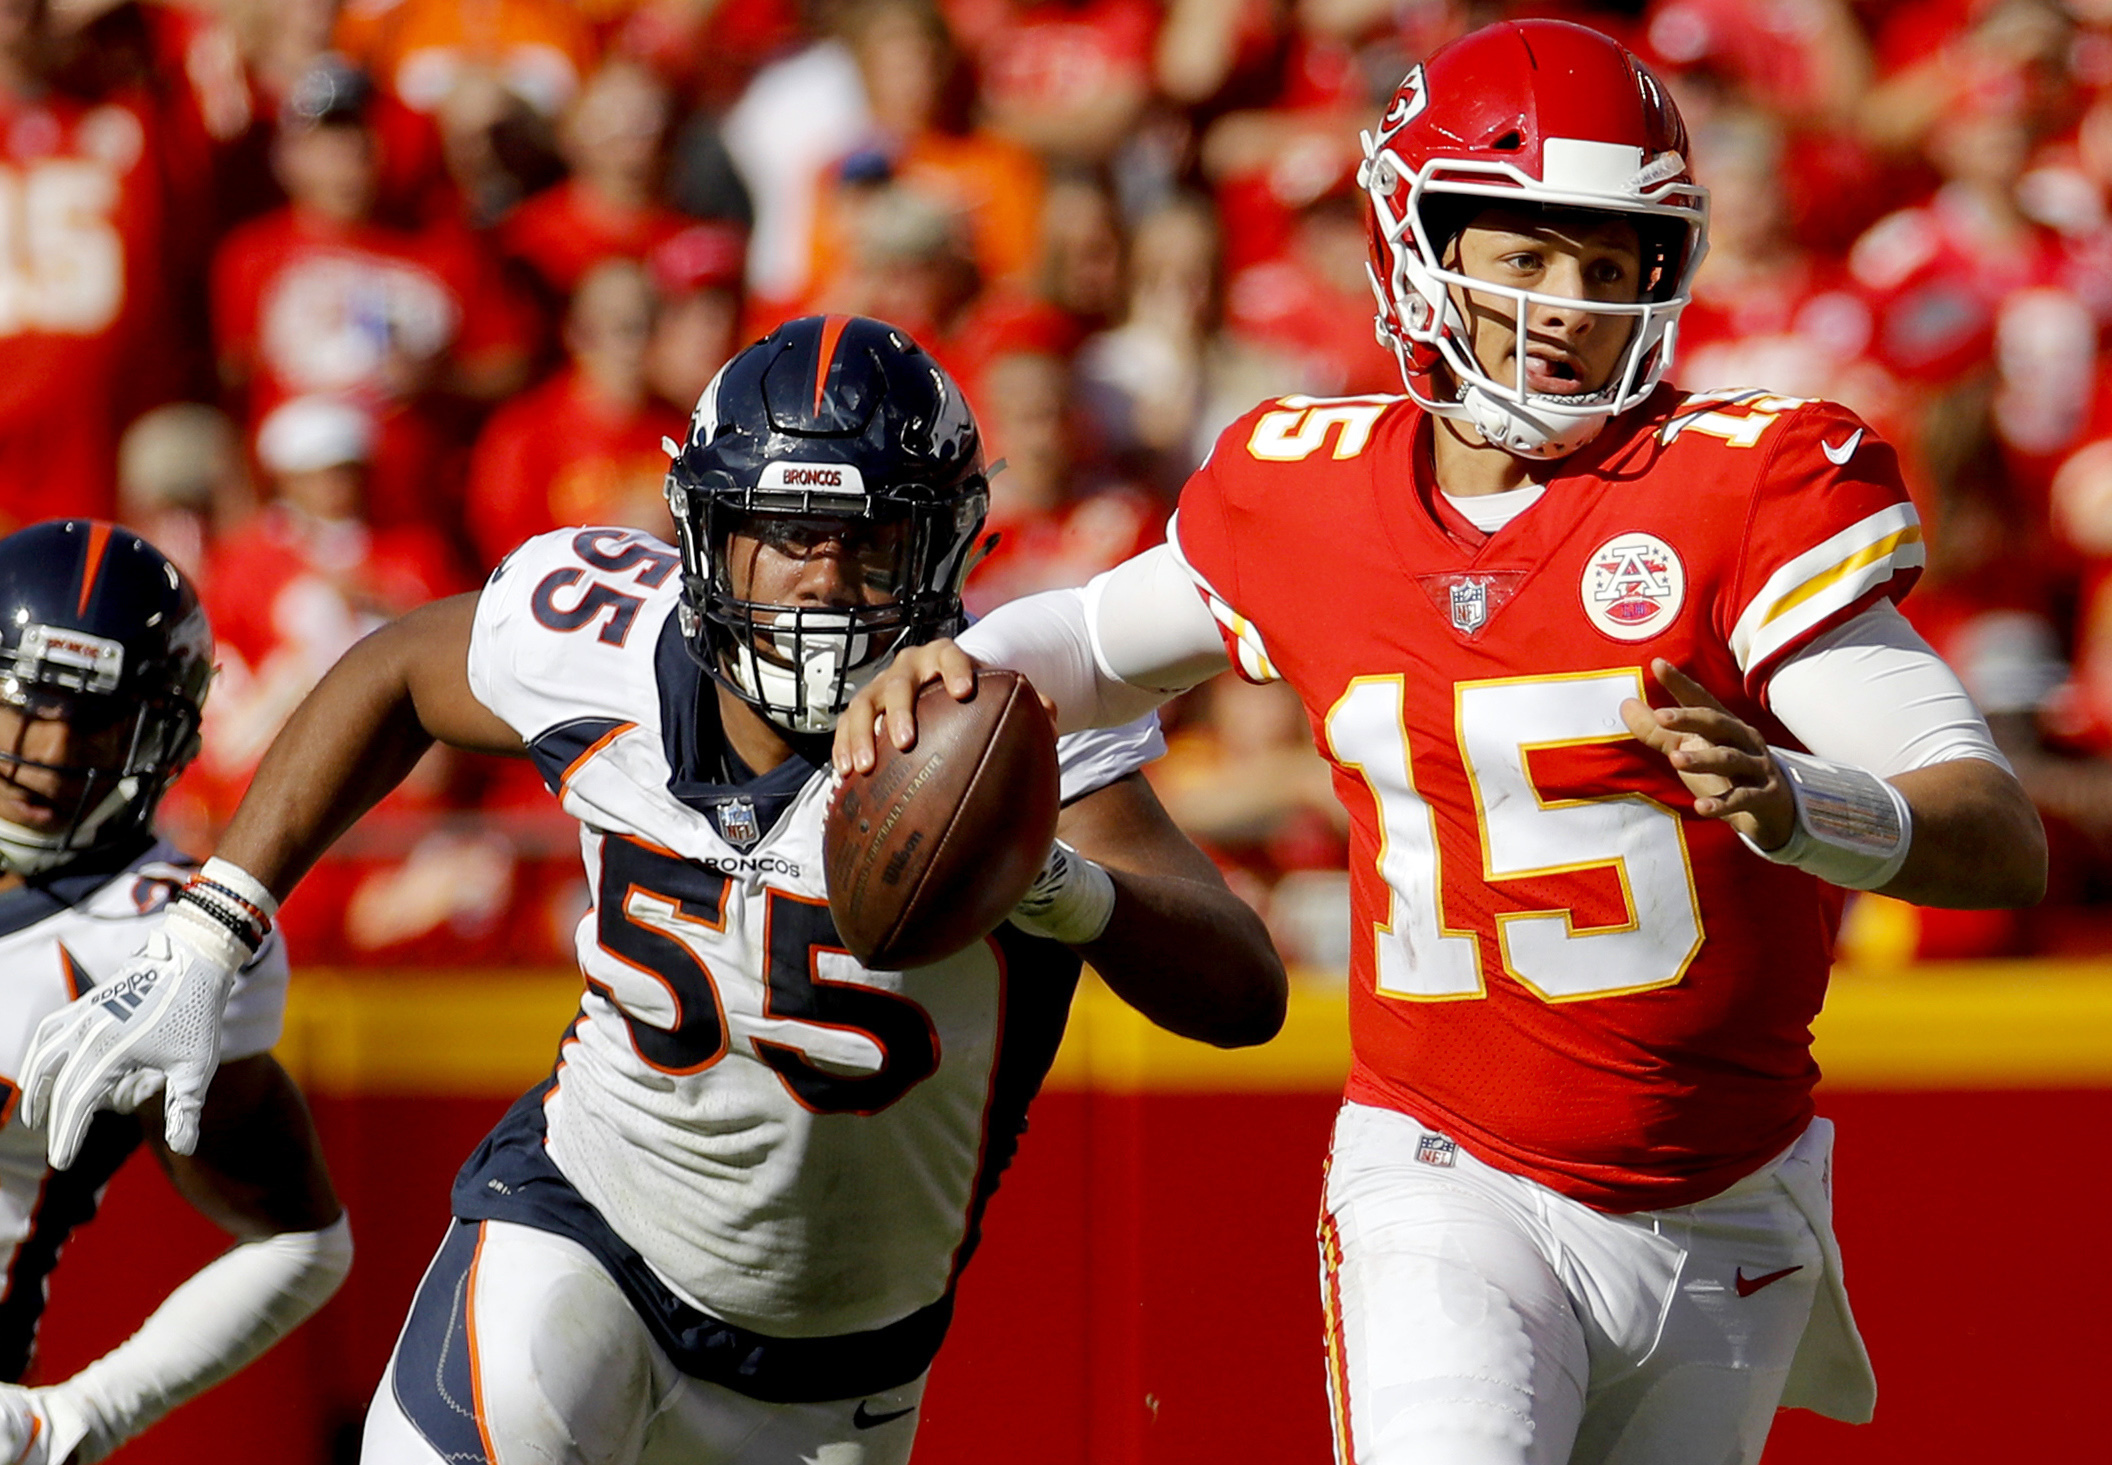 Broncos rookie edge rusher Chubb making up for slow start